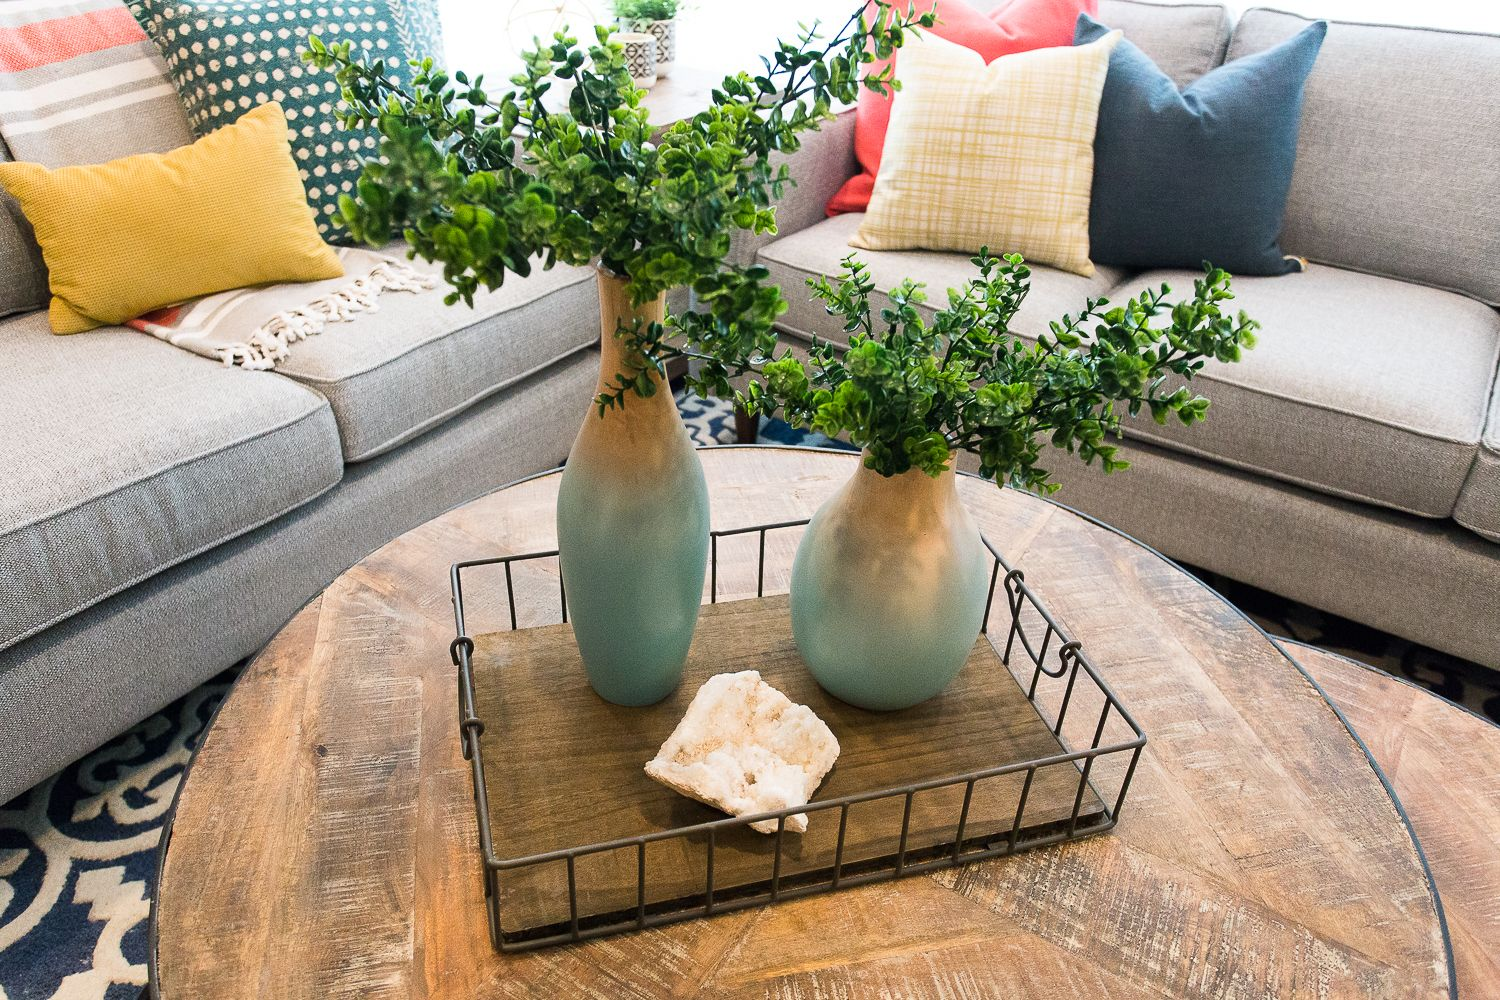 51 Ideas For How To Style A Round Coffee Table Coffee Table Decor Tray Round Coffee Table Decor Decorating Coffee Tables [ 1125 x 750 Pixel ]